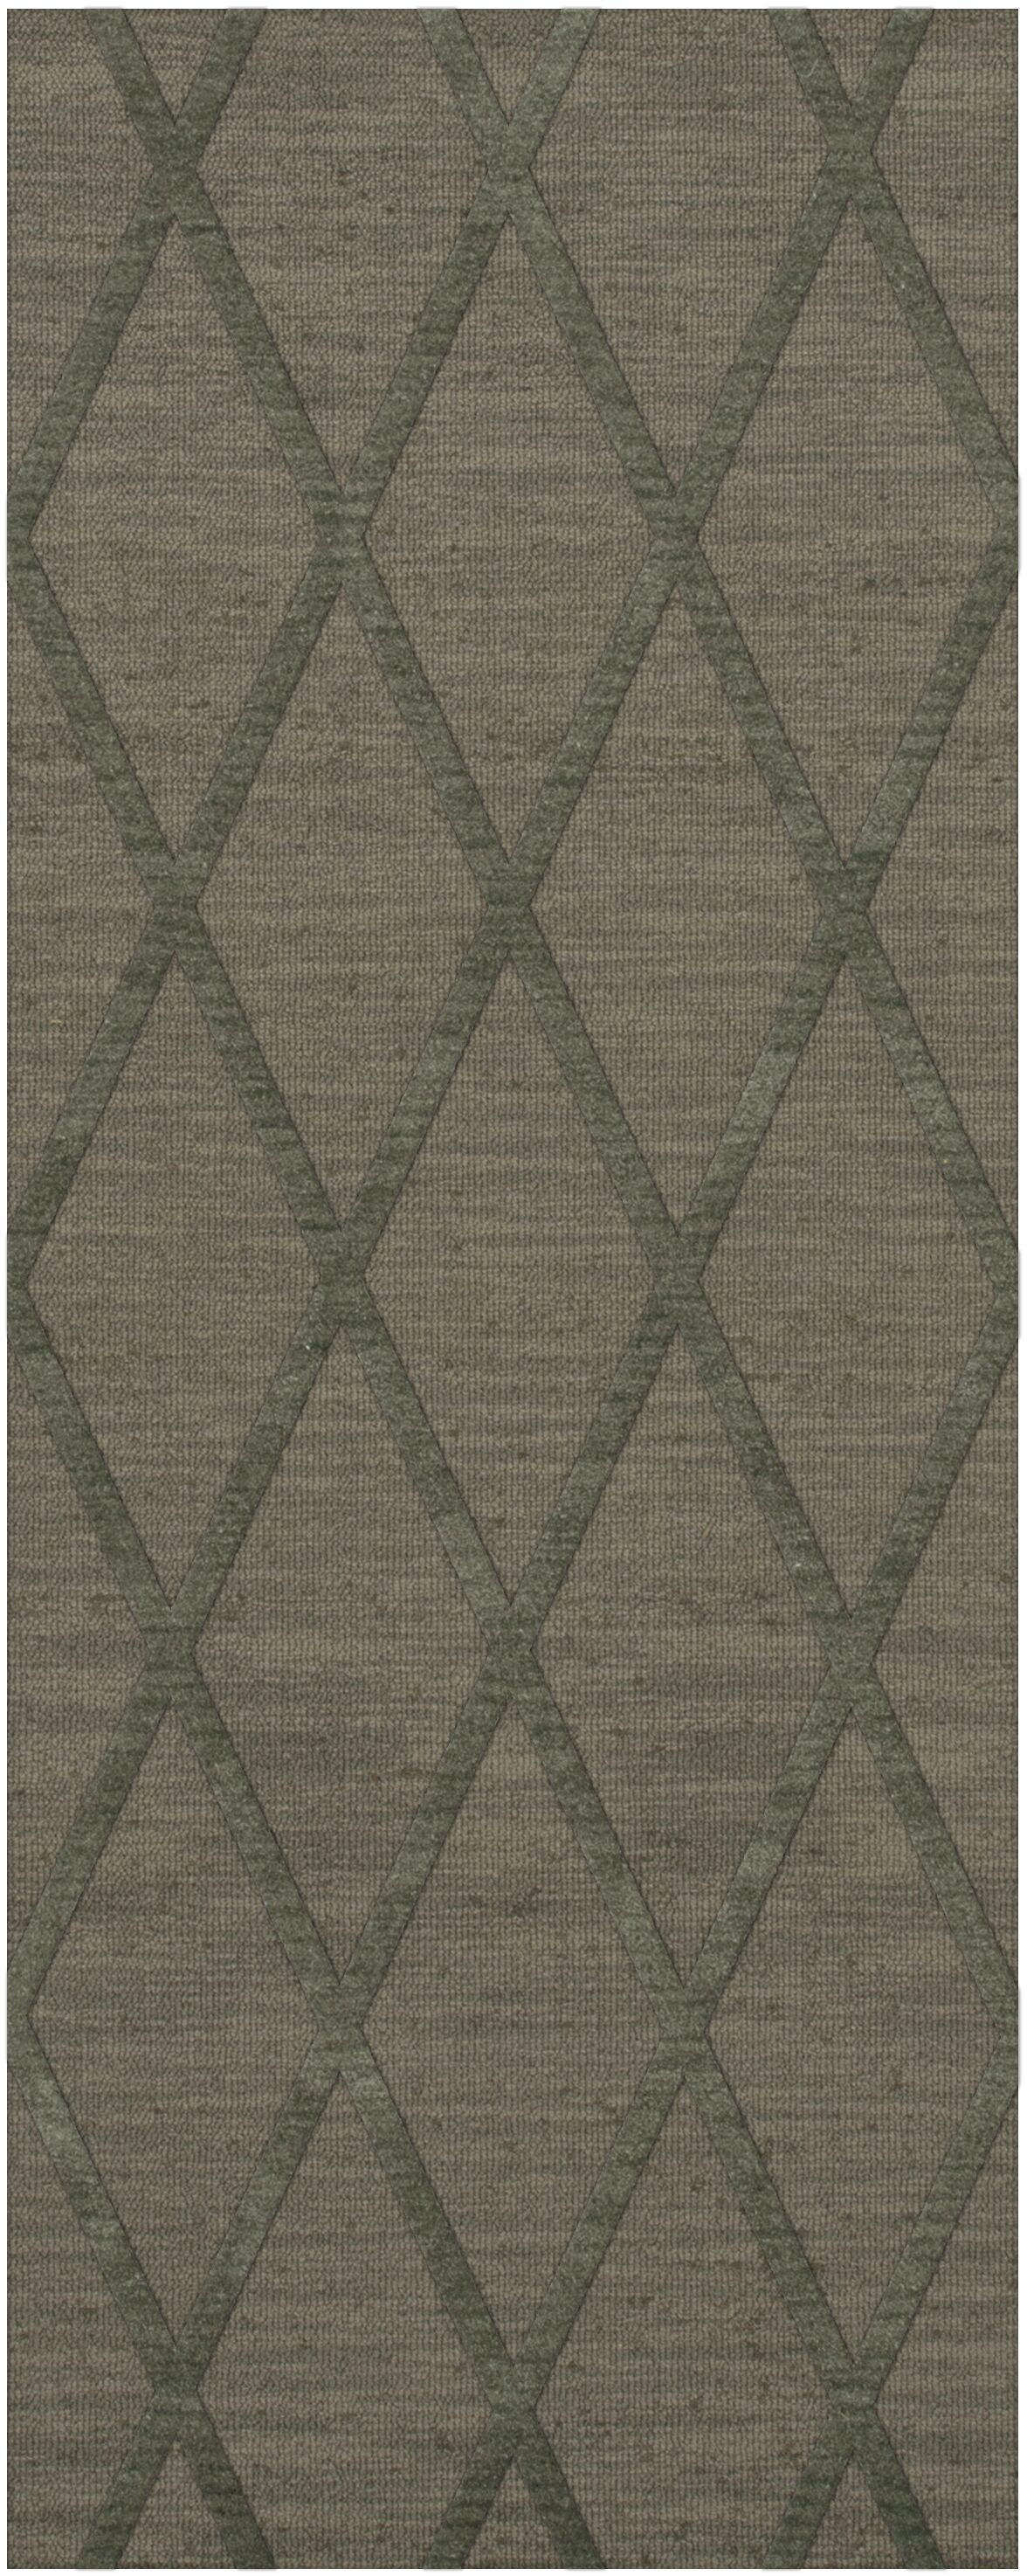 Dover Tufted Wool Aloe Area Rug Rug Size: Runner 2'6